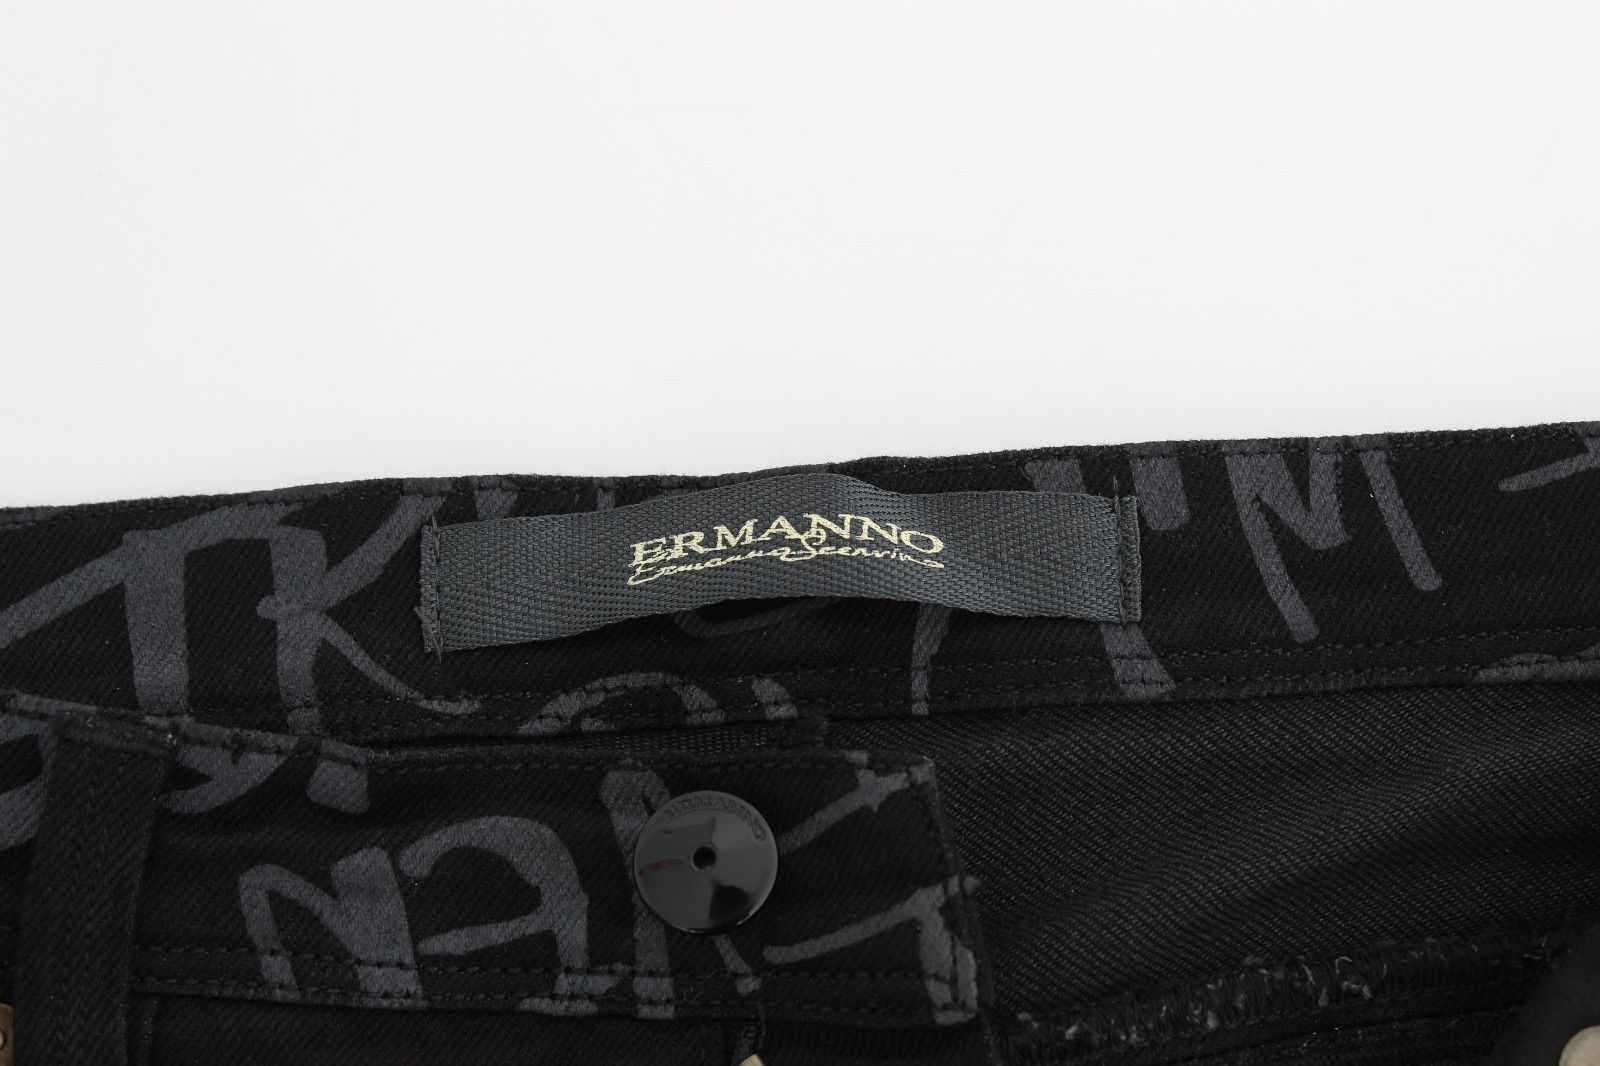 Ermanno Scervino Black Slim Jeans Denim Pants Skinny Stretch